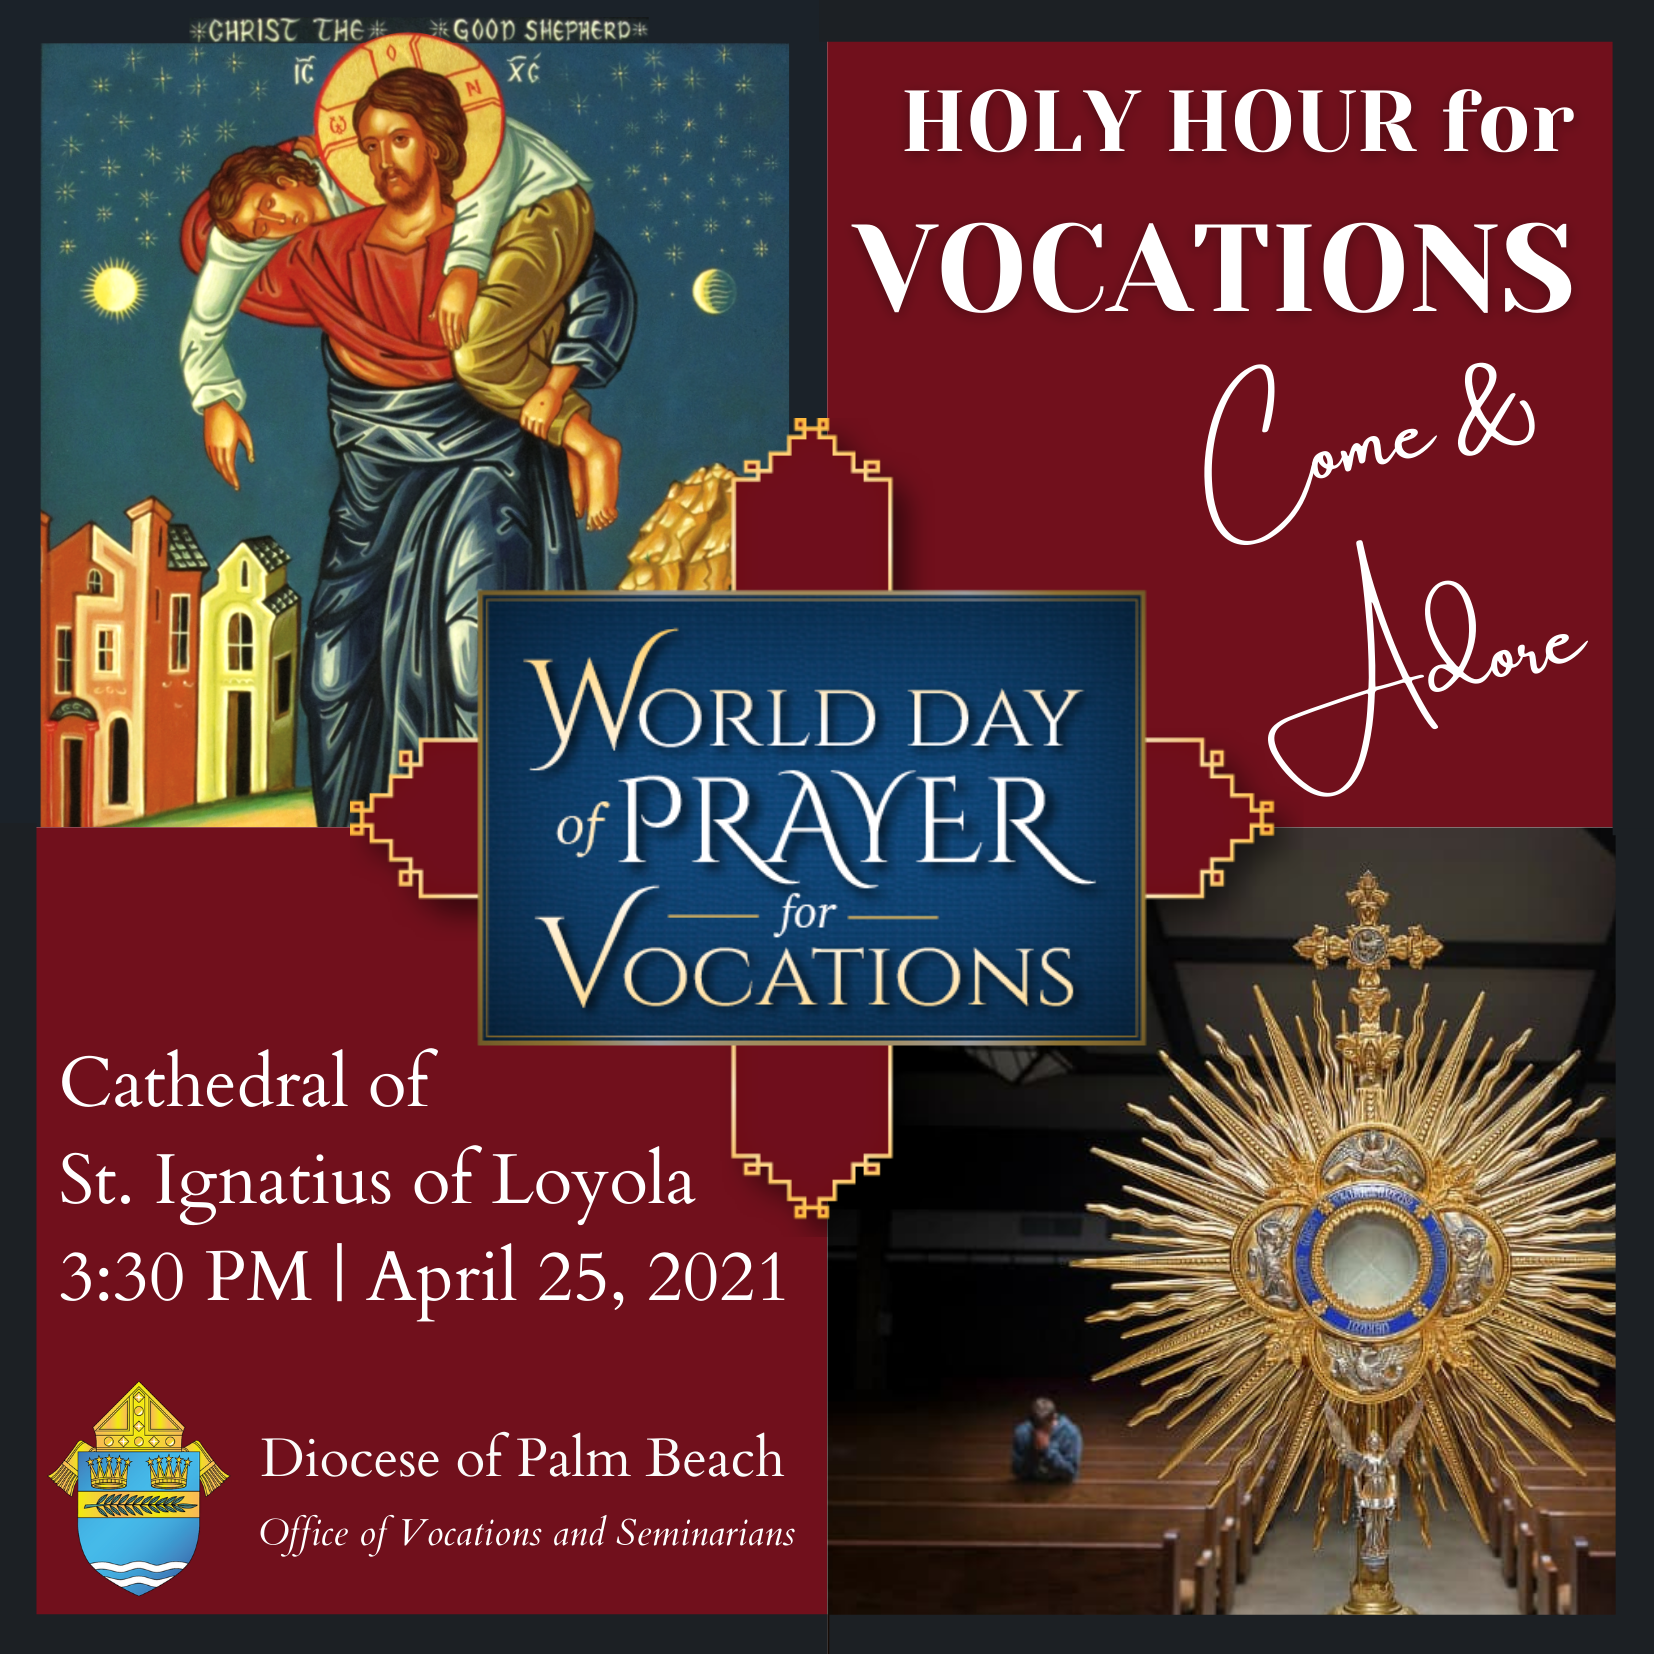 World Day of Prayer for Vocations Holy Hour